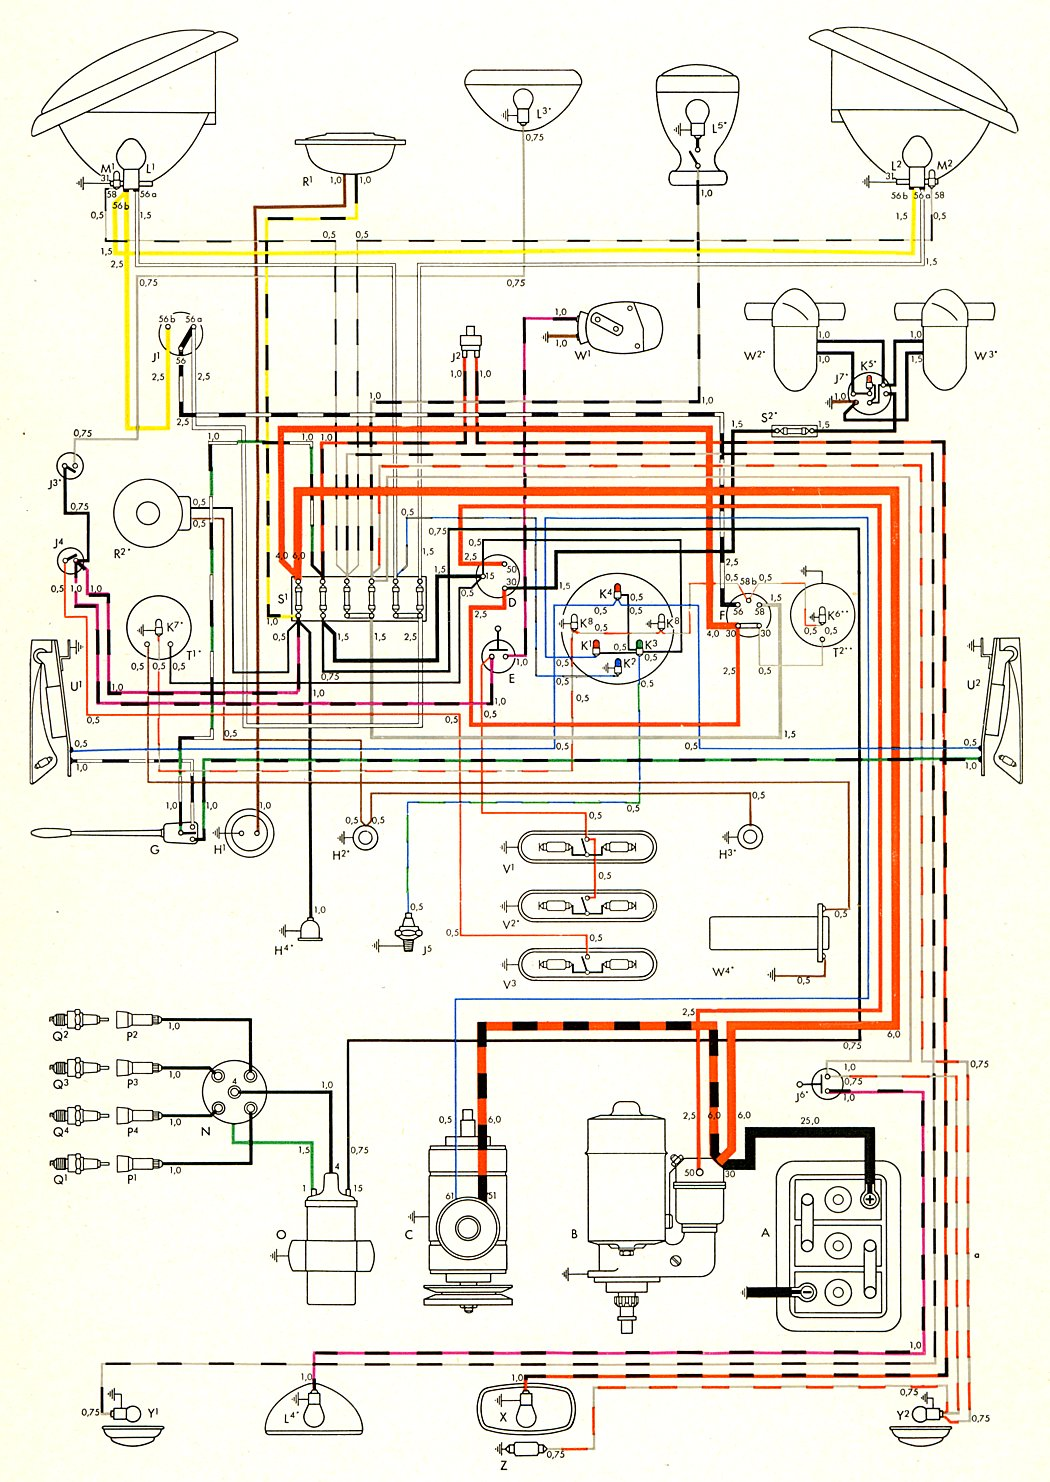 bus_nov57 1957 bus wiring diagram thegoldenbug com 1971 vw bus wiring diagram at honlapkeszites.co